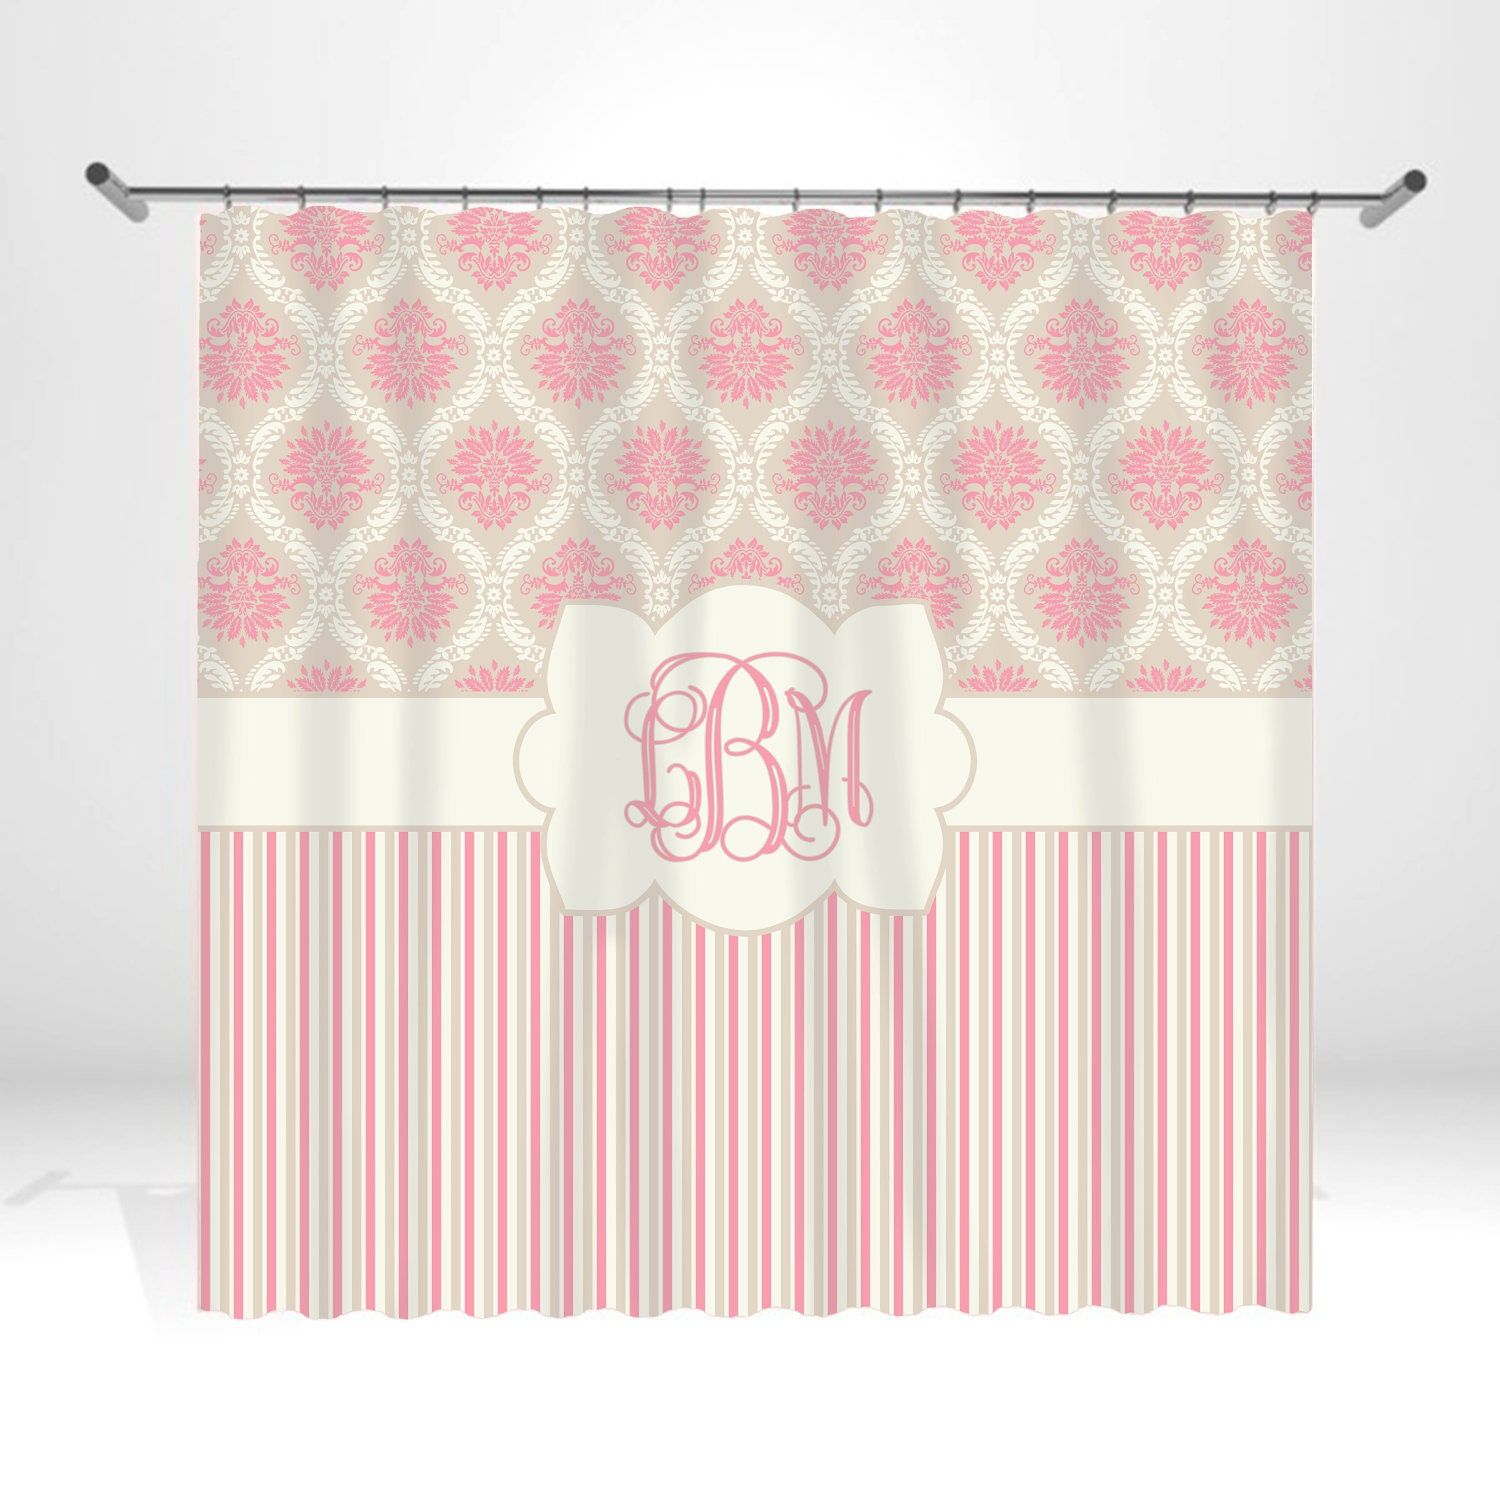 Pale Pink Damask Personalized Custom Shower Curtain Monogram